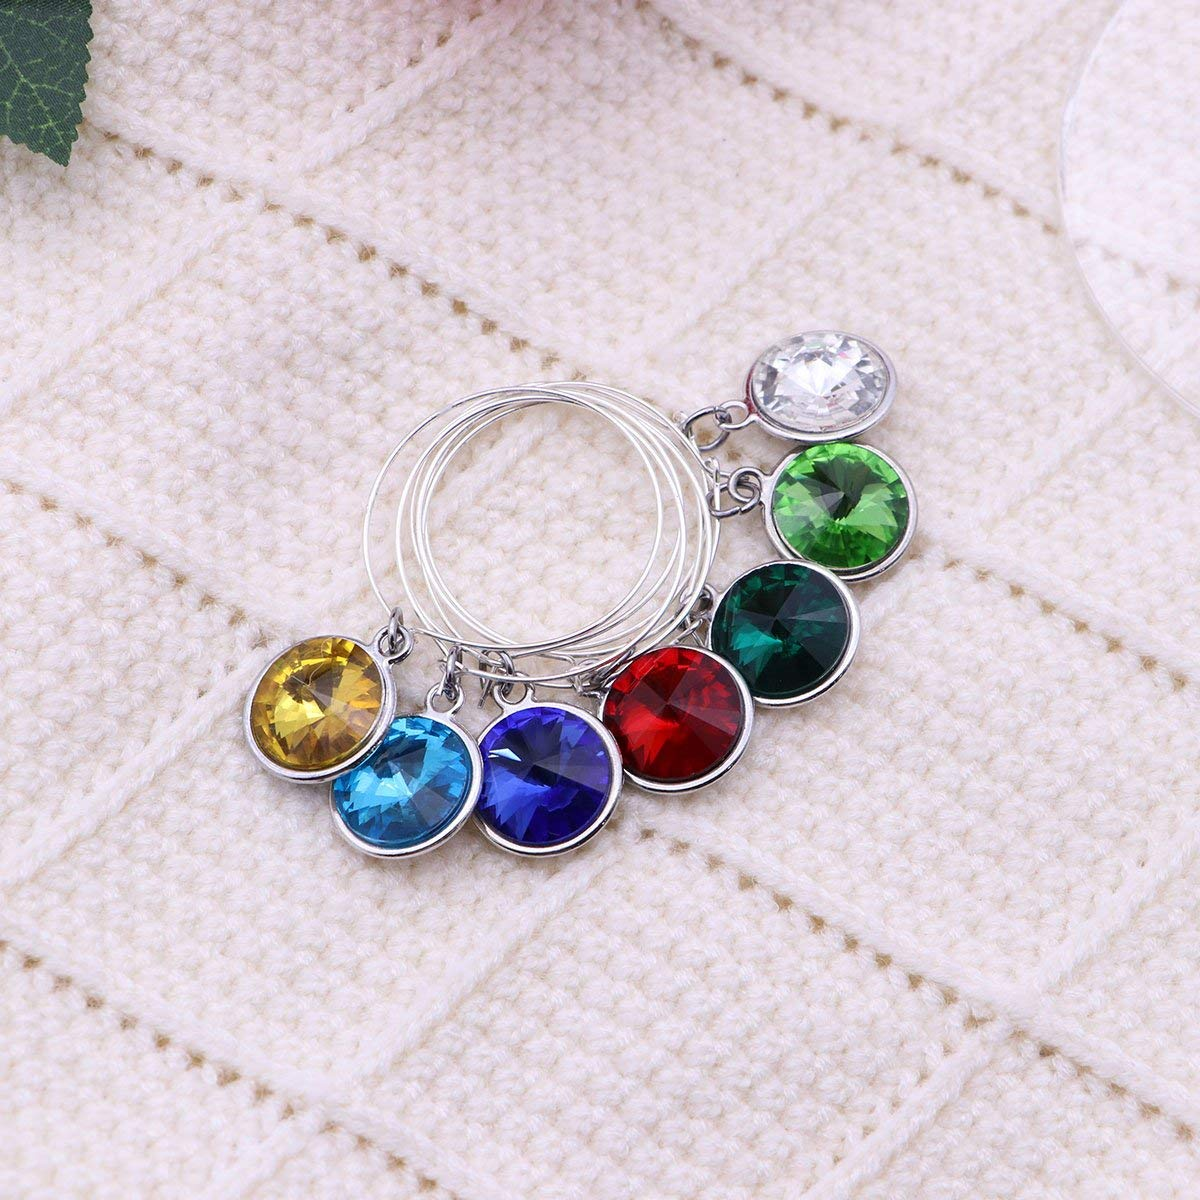 LUOEM 5pcs Birthstone Wine Glass Charms with 25mm Rings Wire Hoops Drink Markers Party Supplies Earrings (Green)